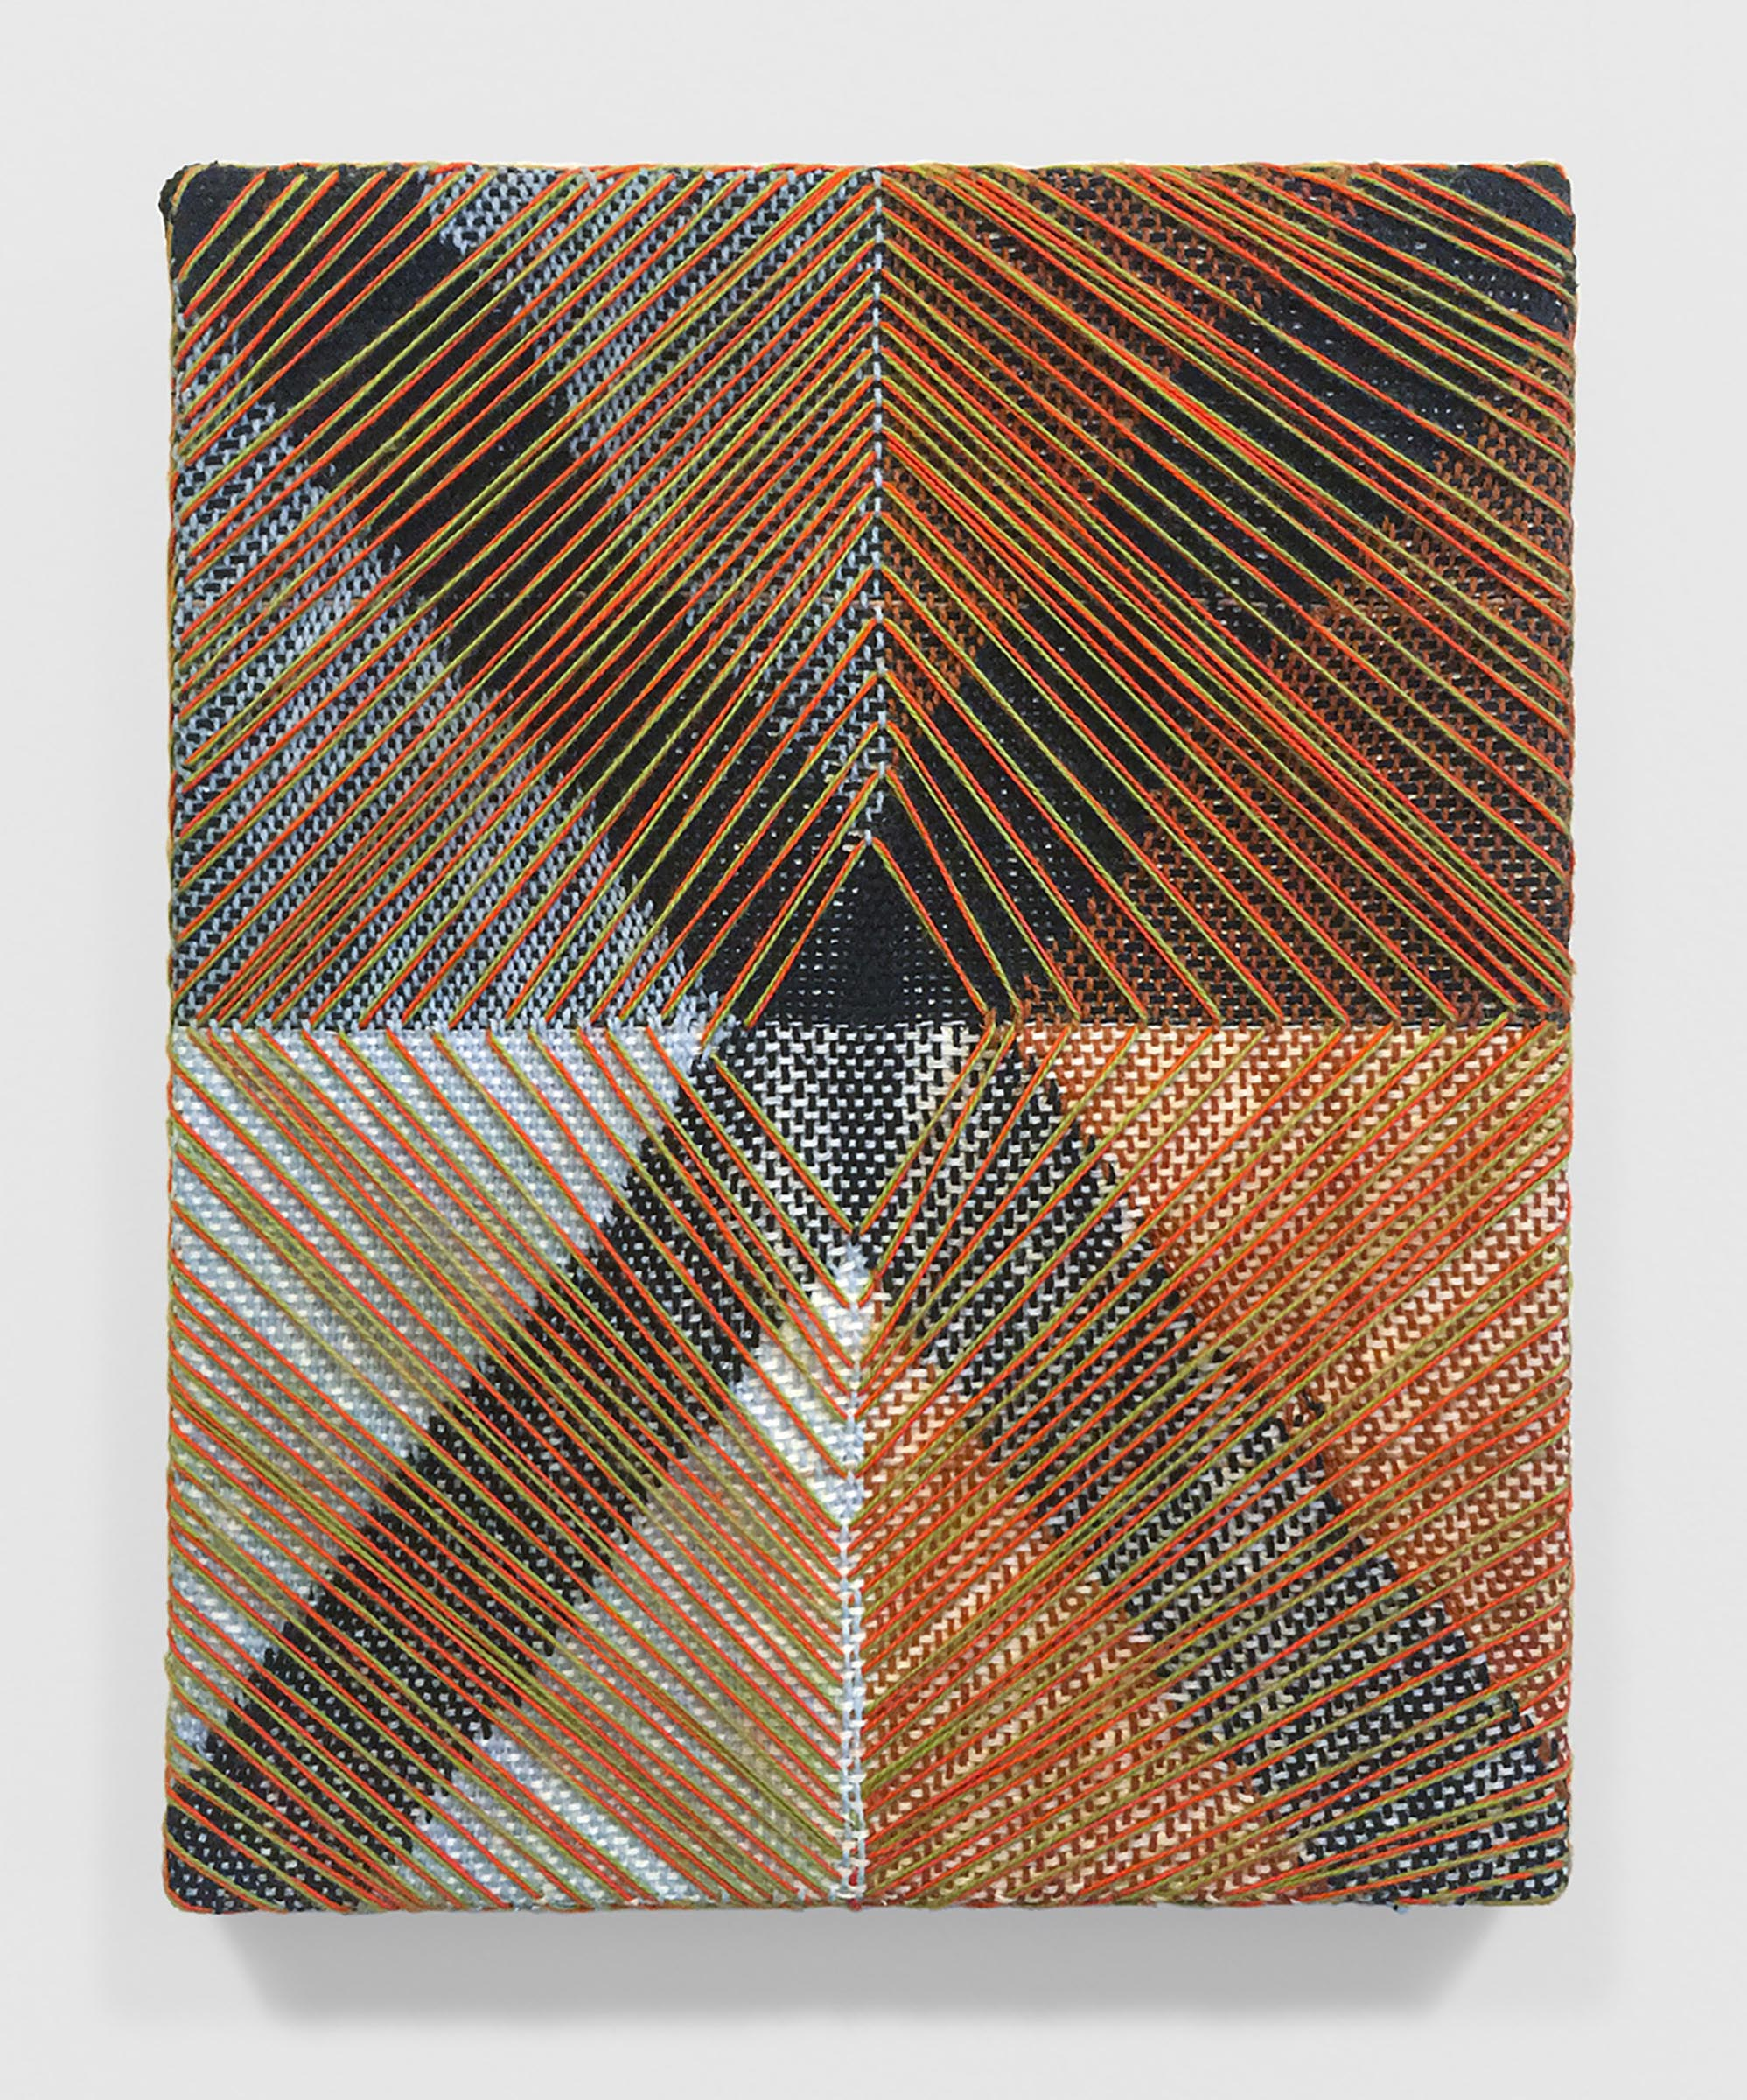 Mary Raap, Toxic Materials, Handwoven cotton and acrylic medium over canvas, 10 x 8 x 1 in, 2019